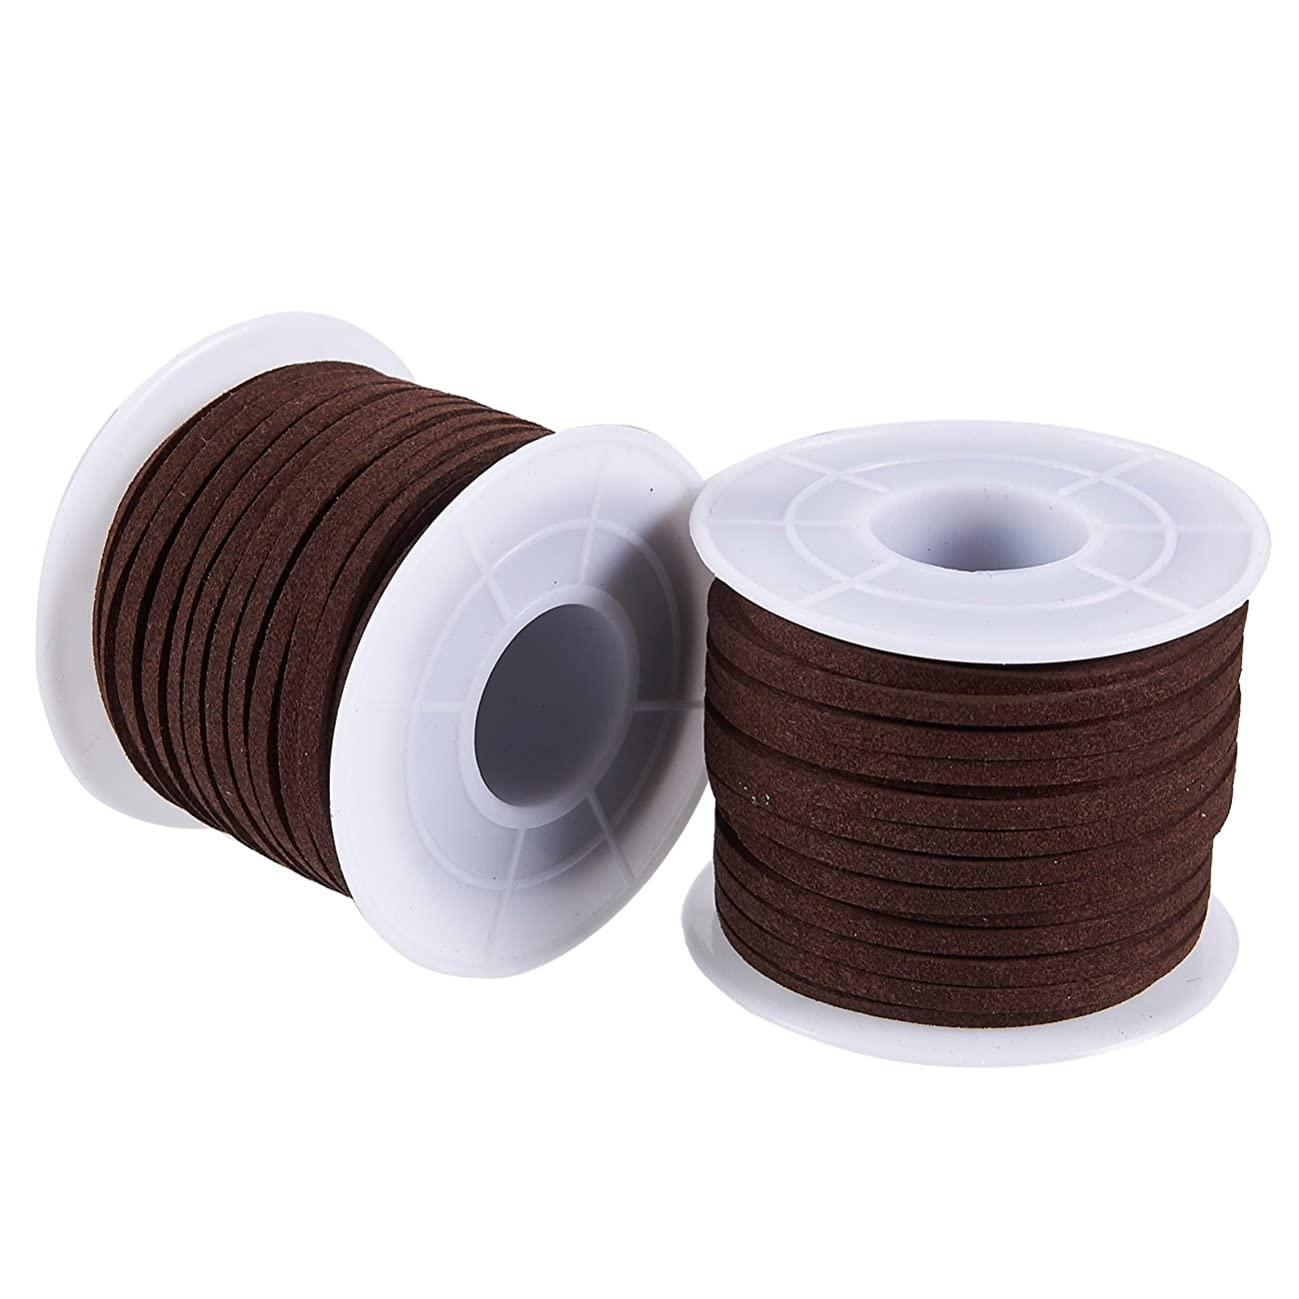 Faux Deerskin Lace Spool - 2-Pack 16.4-Yard Suede Leather Strap Beading Cord, Flat Leather Cord, Brown, 0.1 Inches Wide and 49.2 Feet Long Each